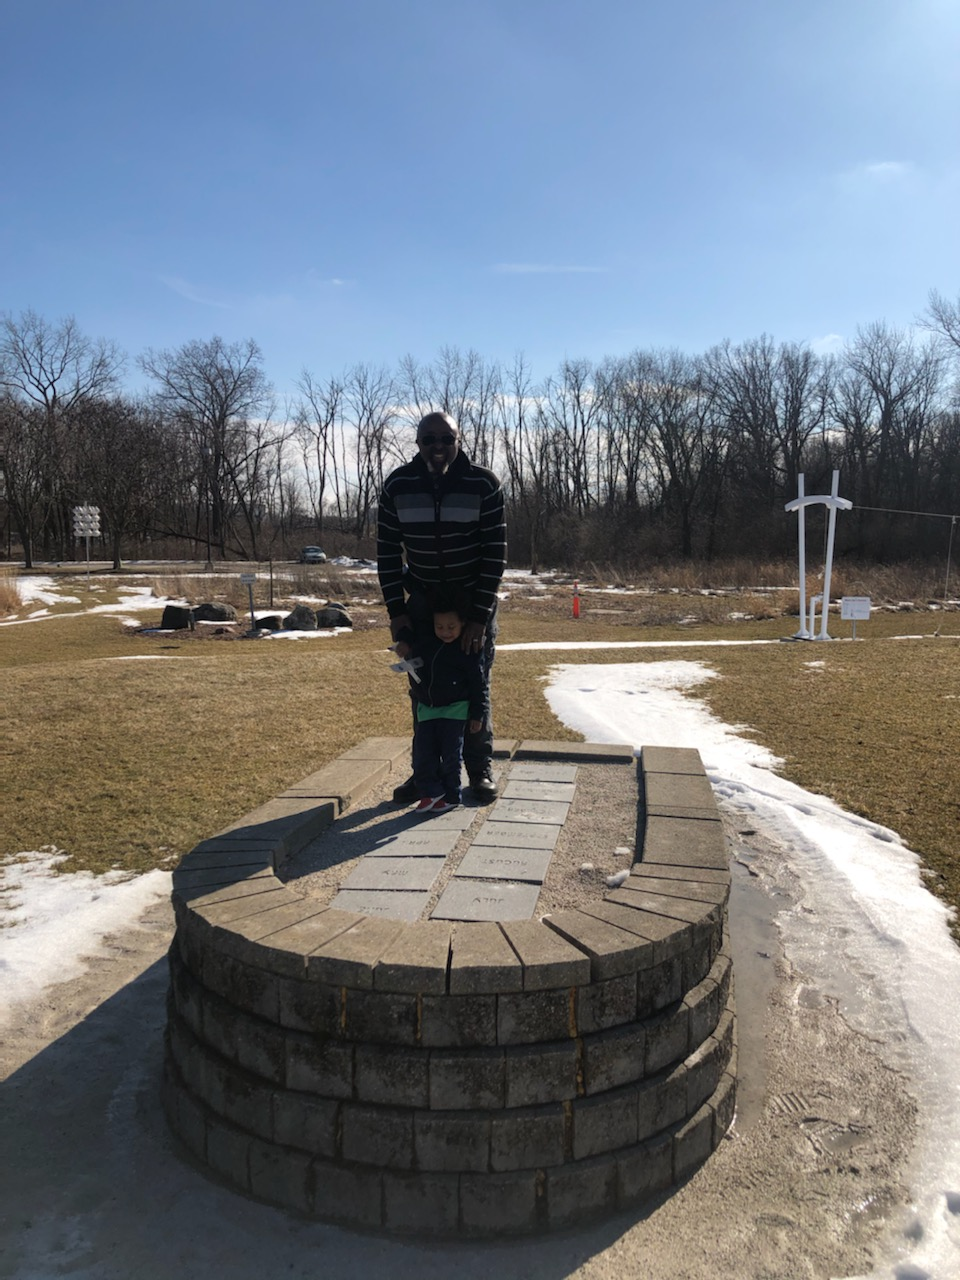 Flashback Friday: Zion and Grandpa stand on the sundial. This photo was taken at 1:59 p.m. on Feb. 18. people Photo: O'Sheg Oshinowo